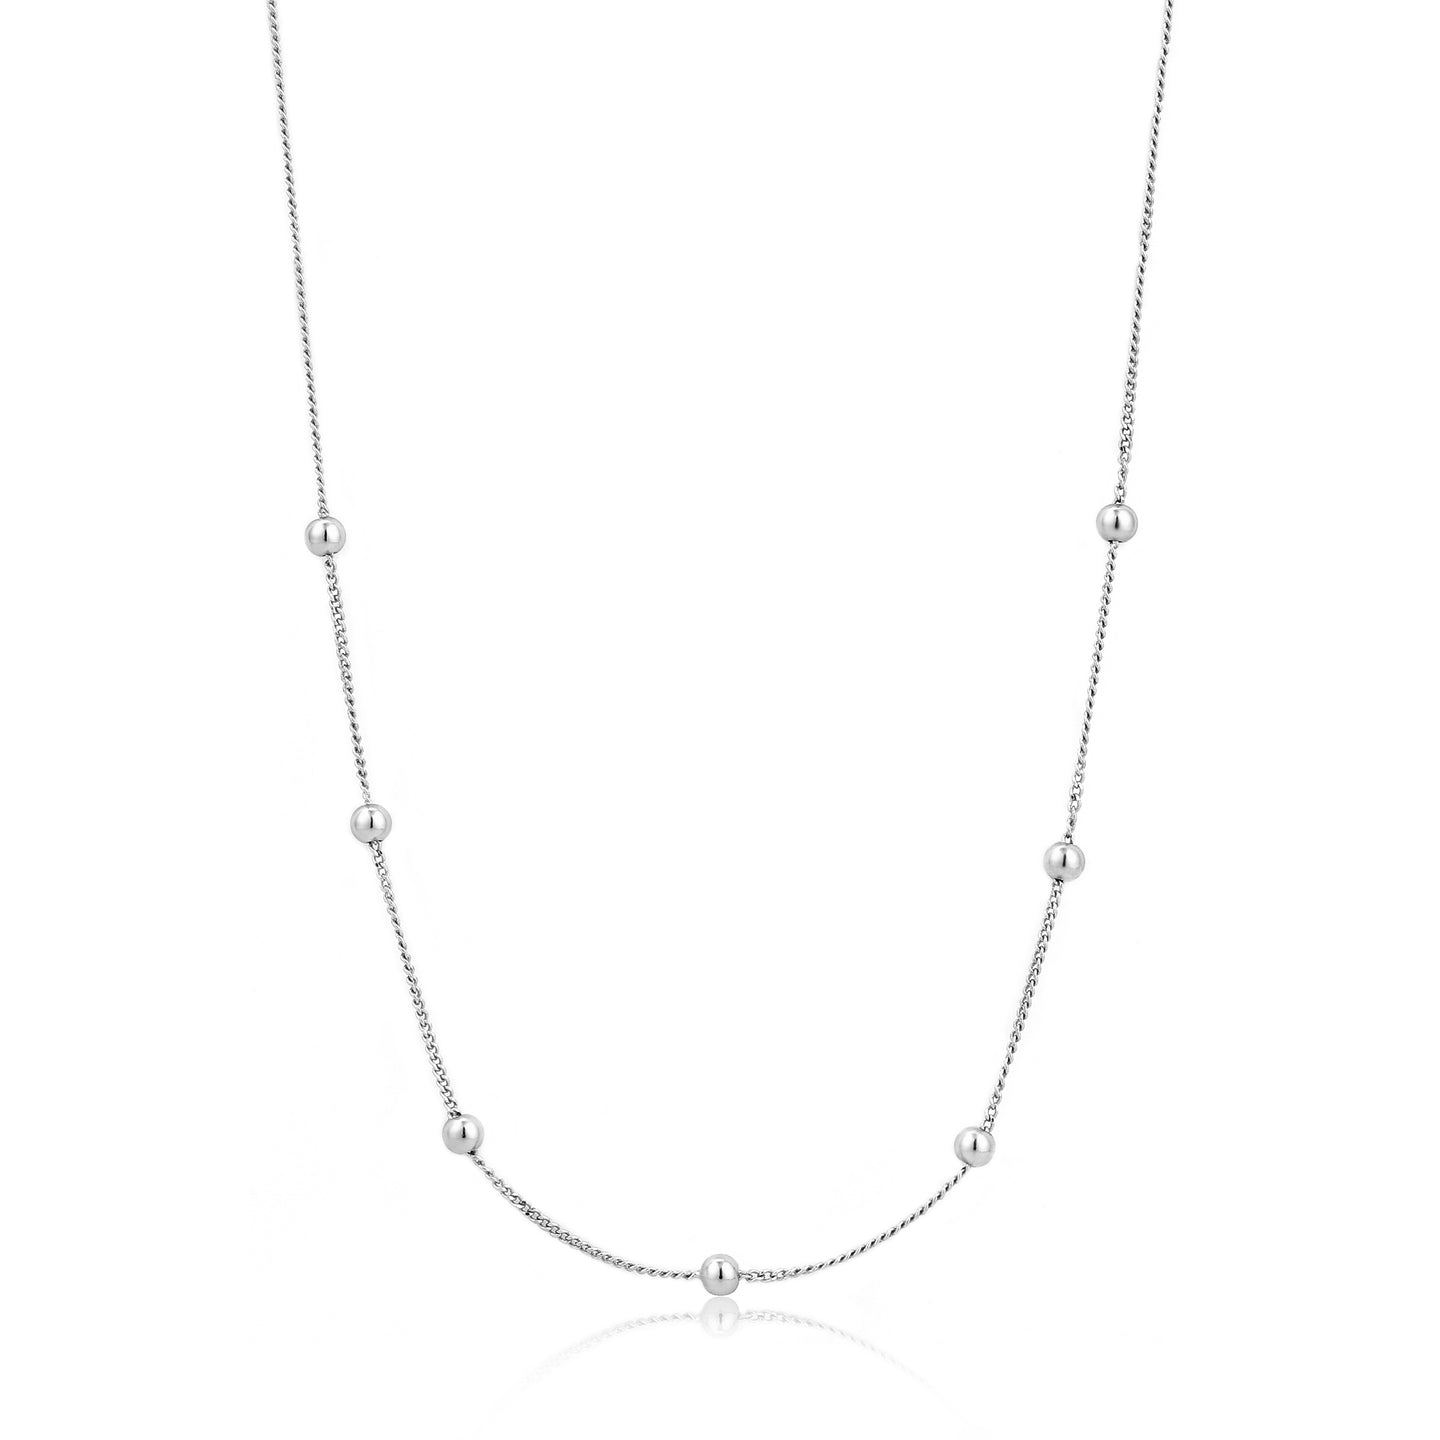 Silver Modern Beaded Necklace N002-03H